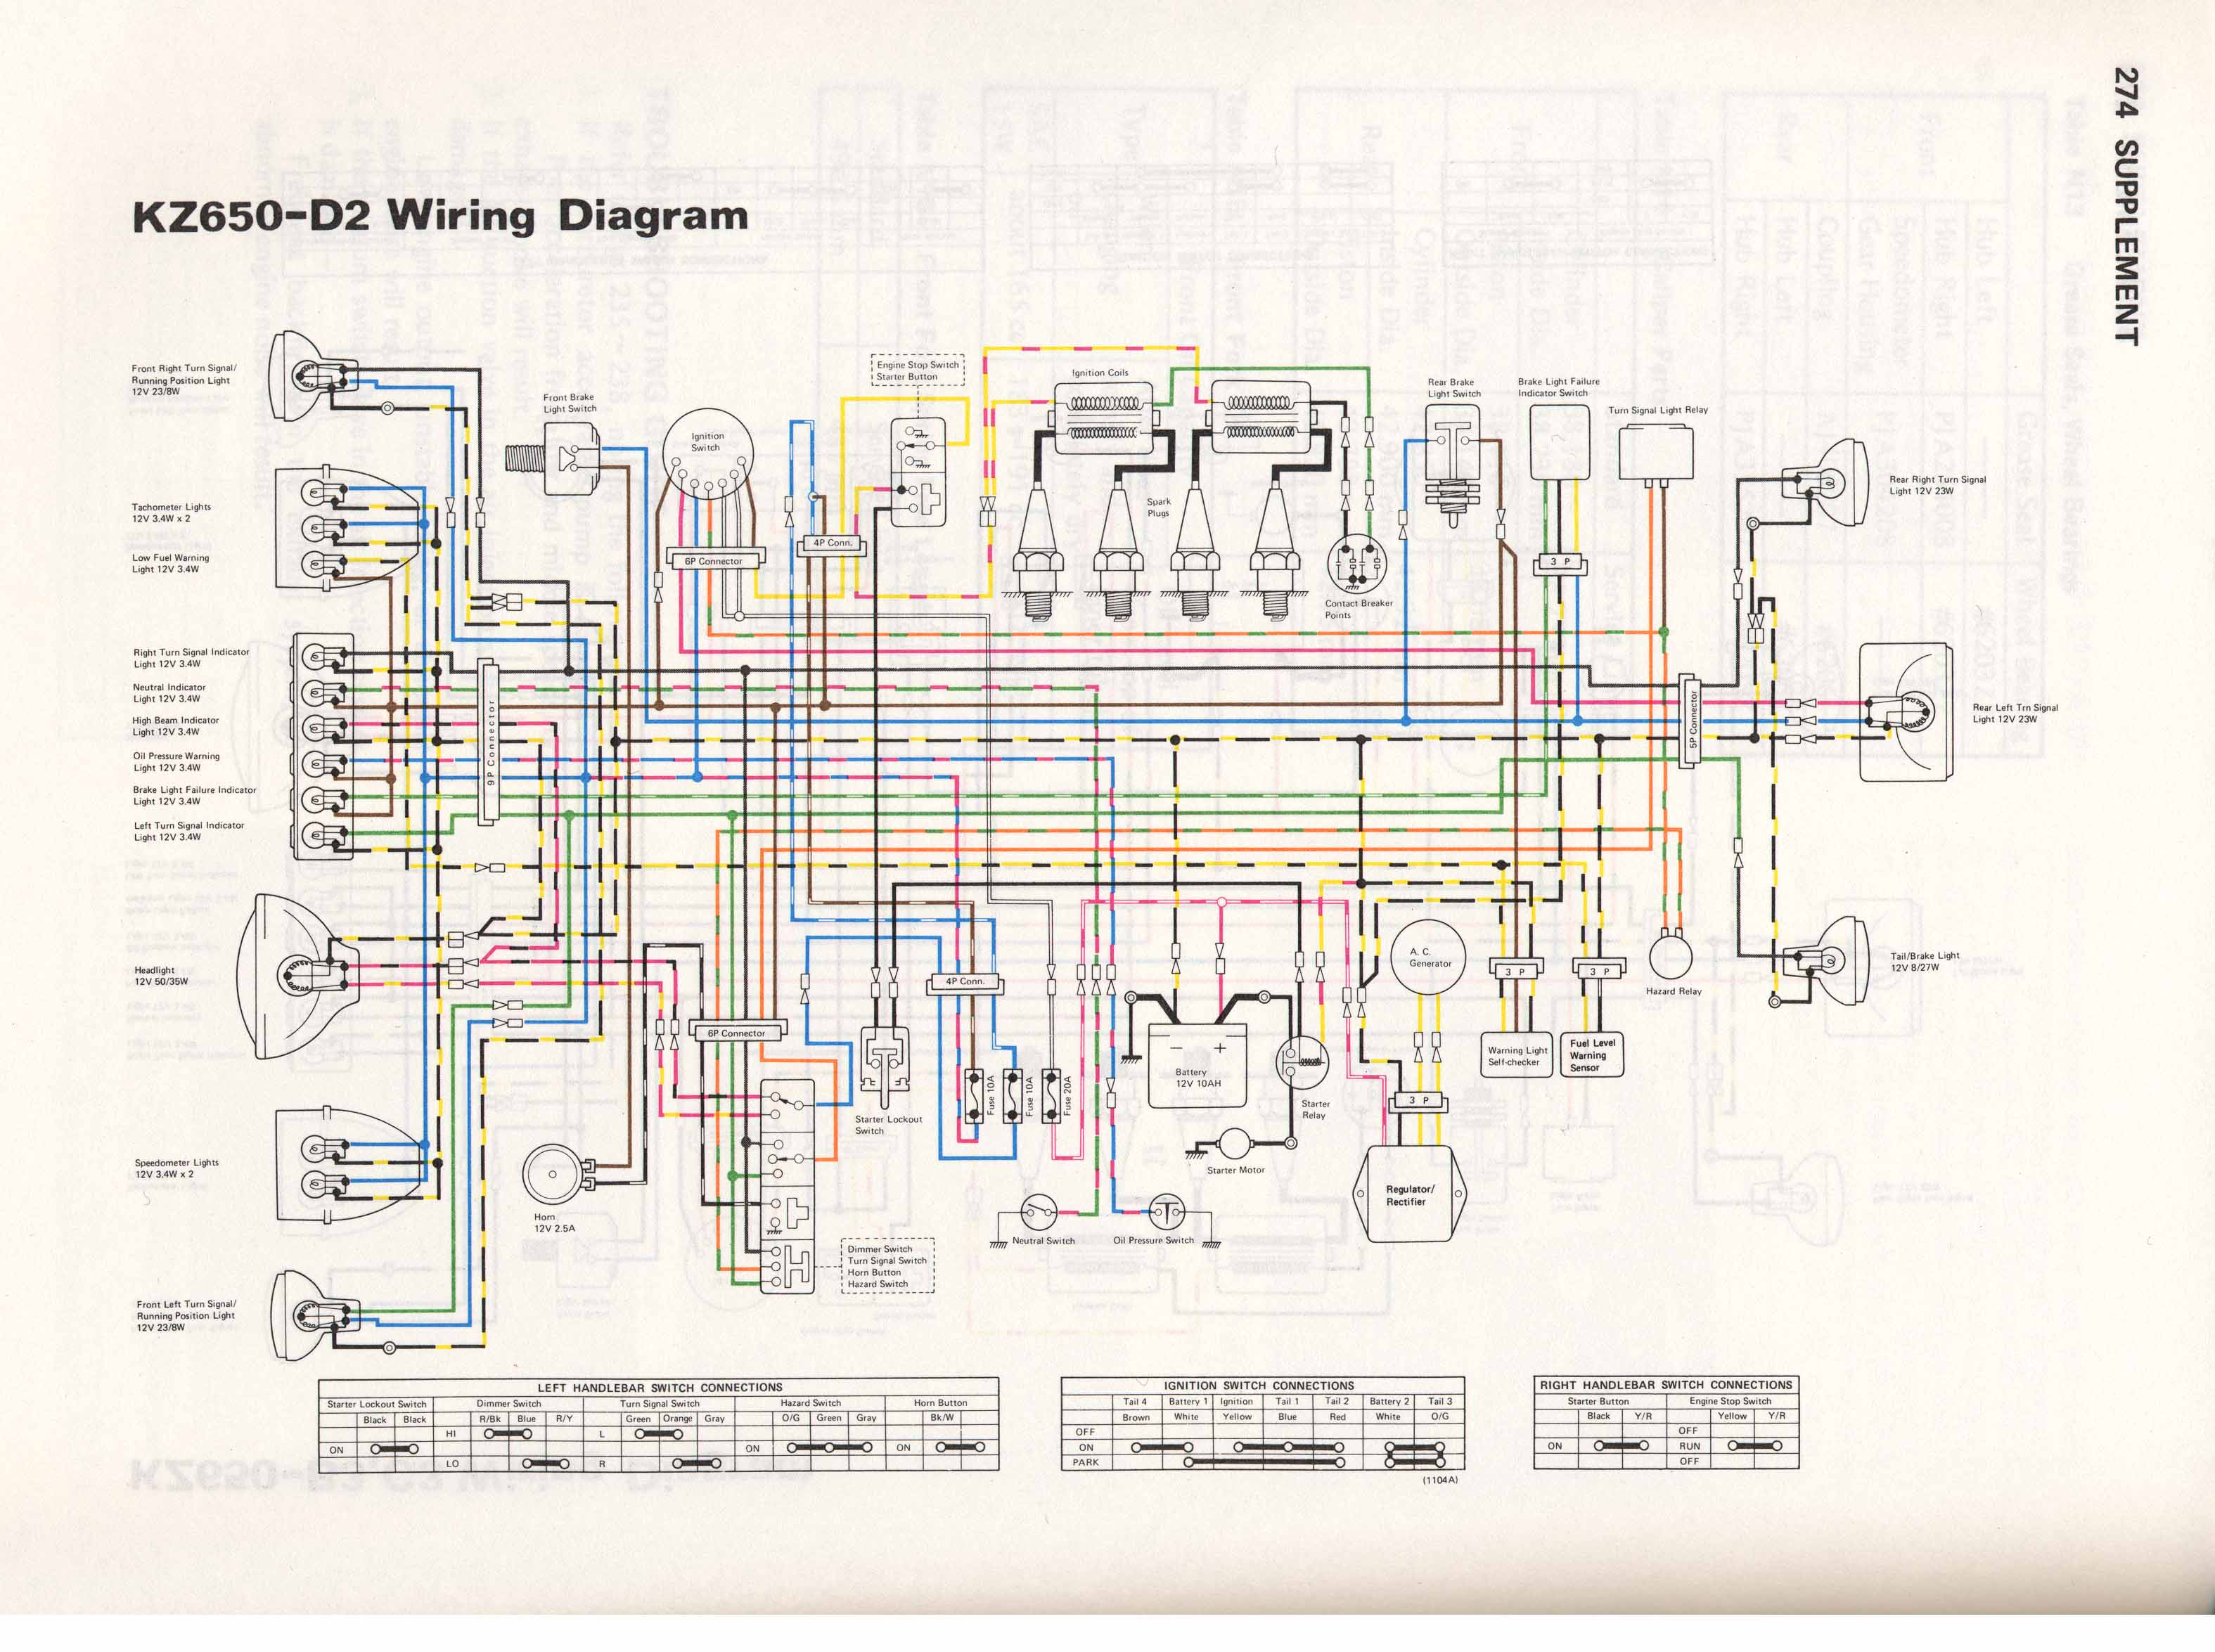 Diagram In Pictures Database Triumph 650 Wiring Diagram Just Download Or Read Wiring Diagram Bone Diagram Onyxum Com